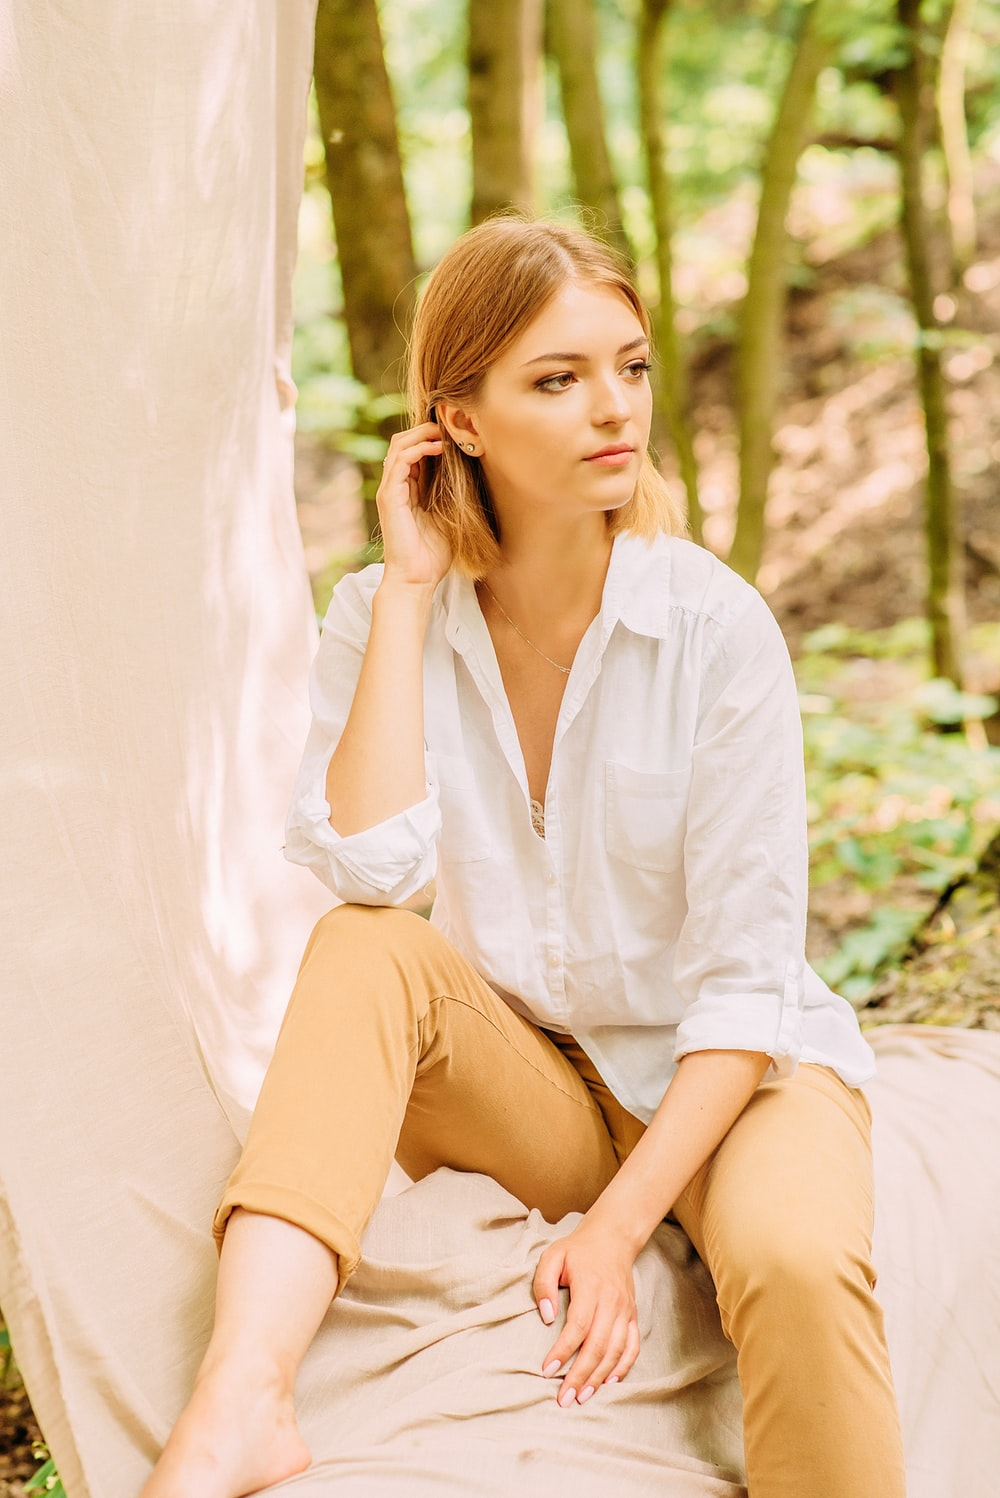 woman in white dress shirt sitting on brown wooden bench